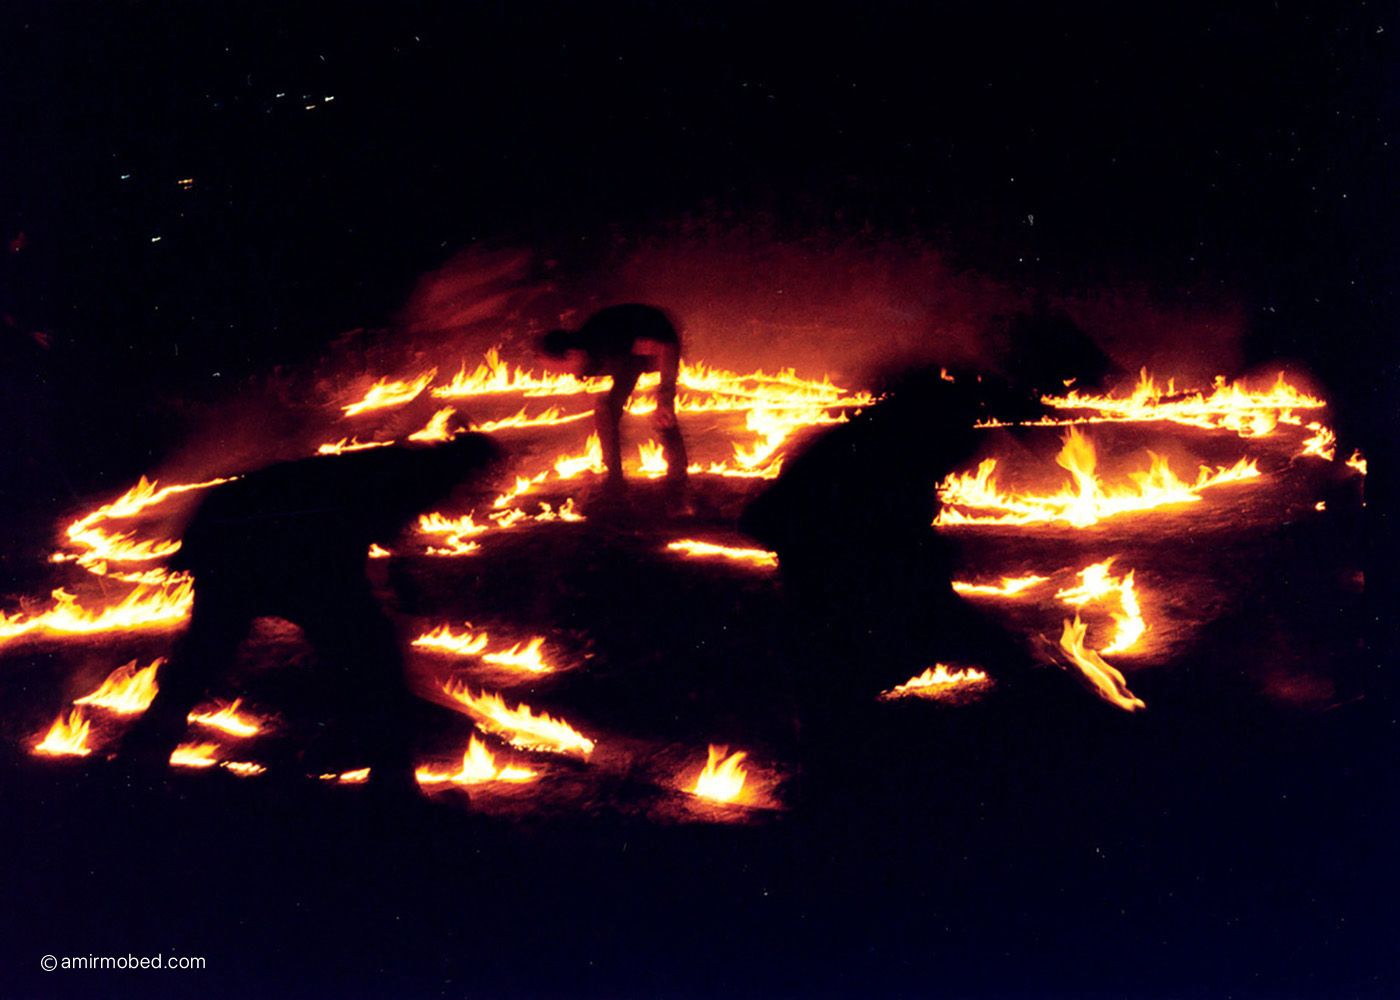 A Performance with Fire, 2003